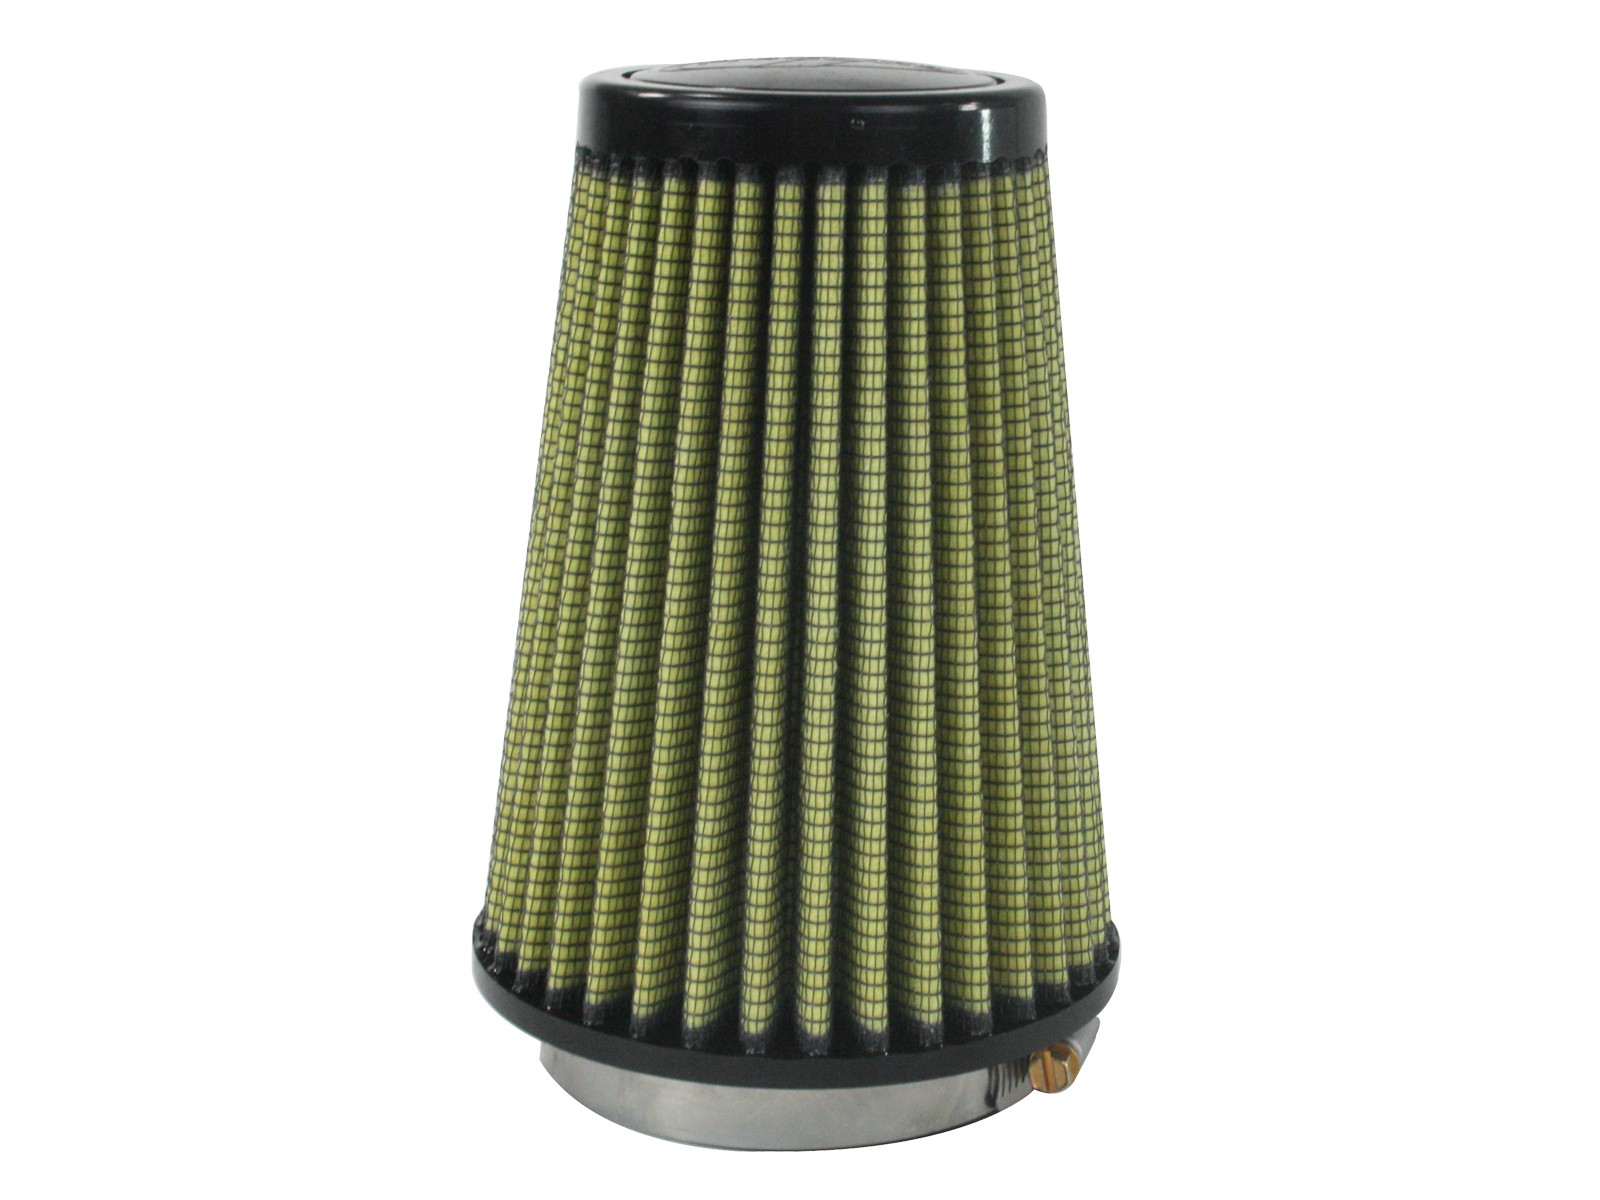 aFe POWER 72-35507 Magnum FLOW Pro GUARD7 Air Filter